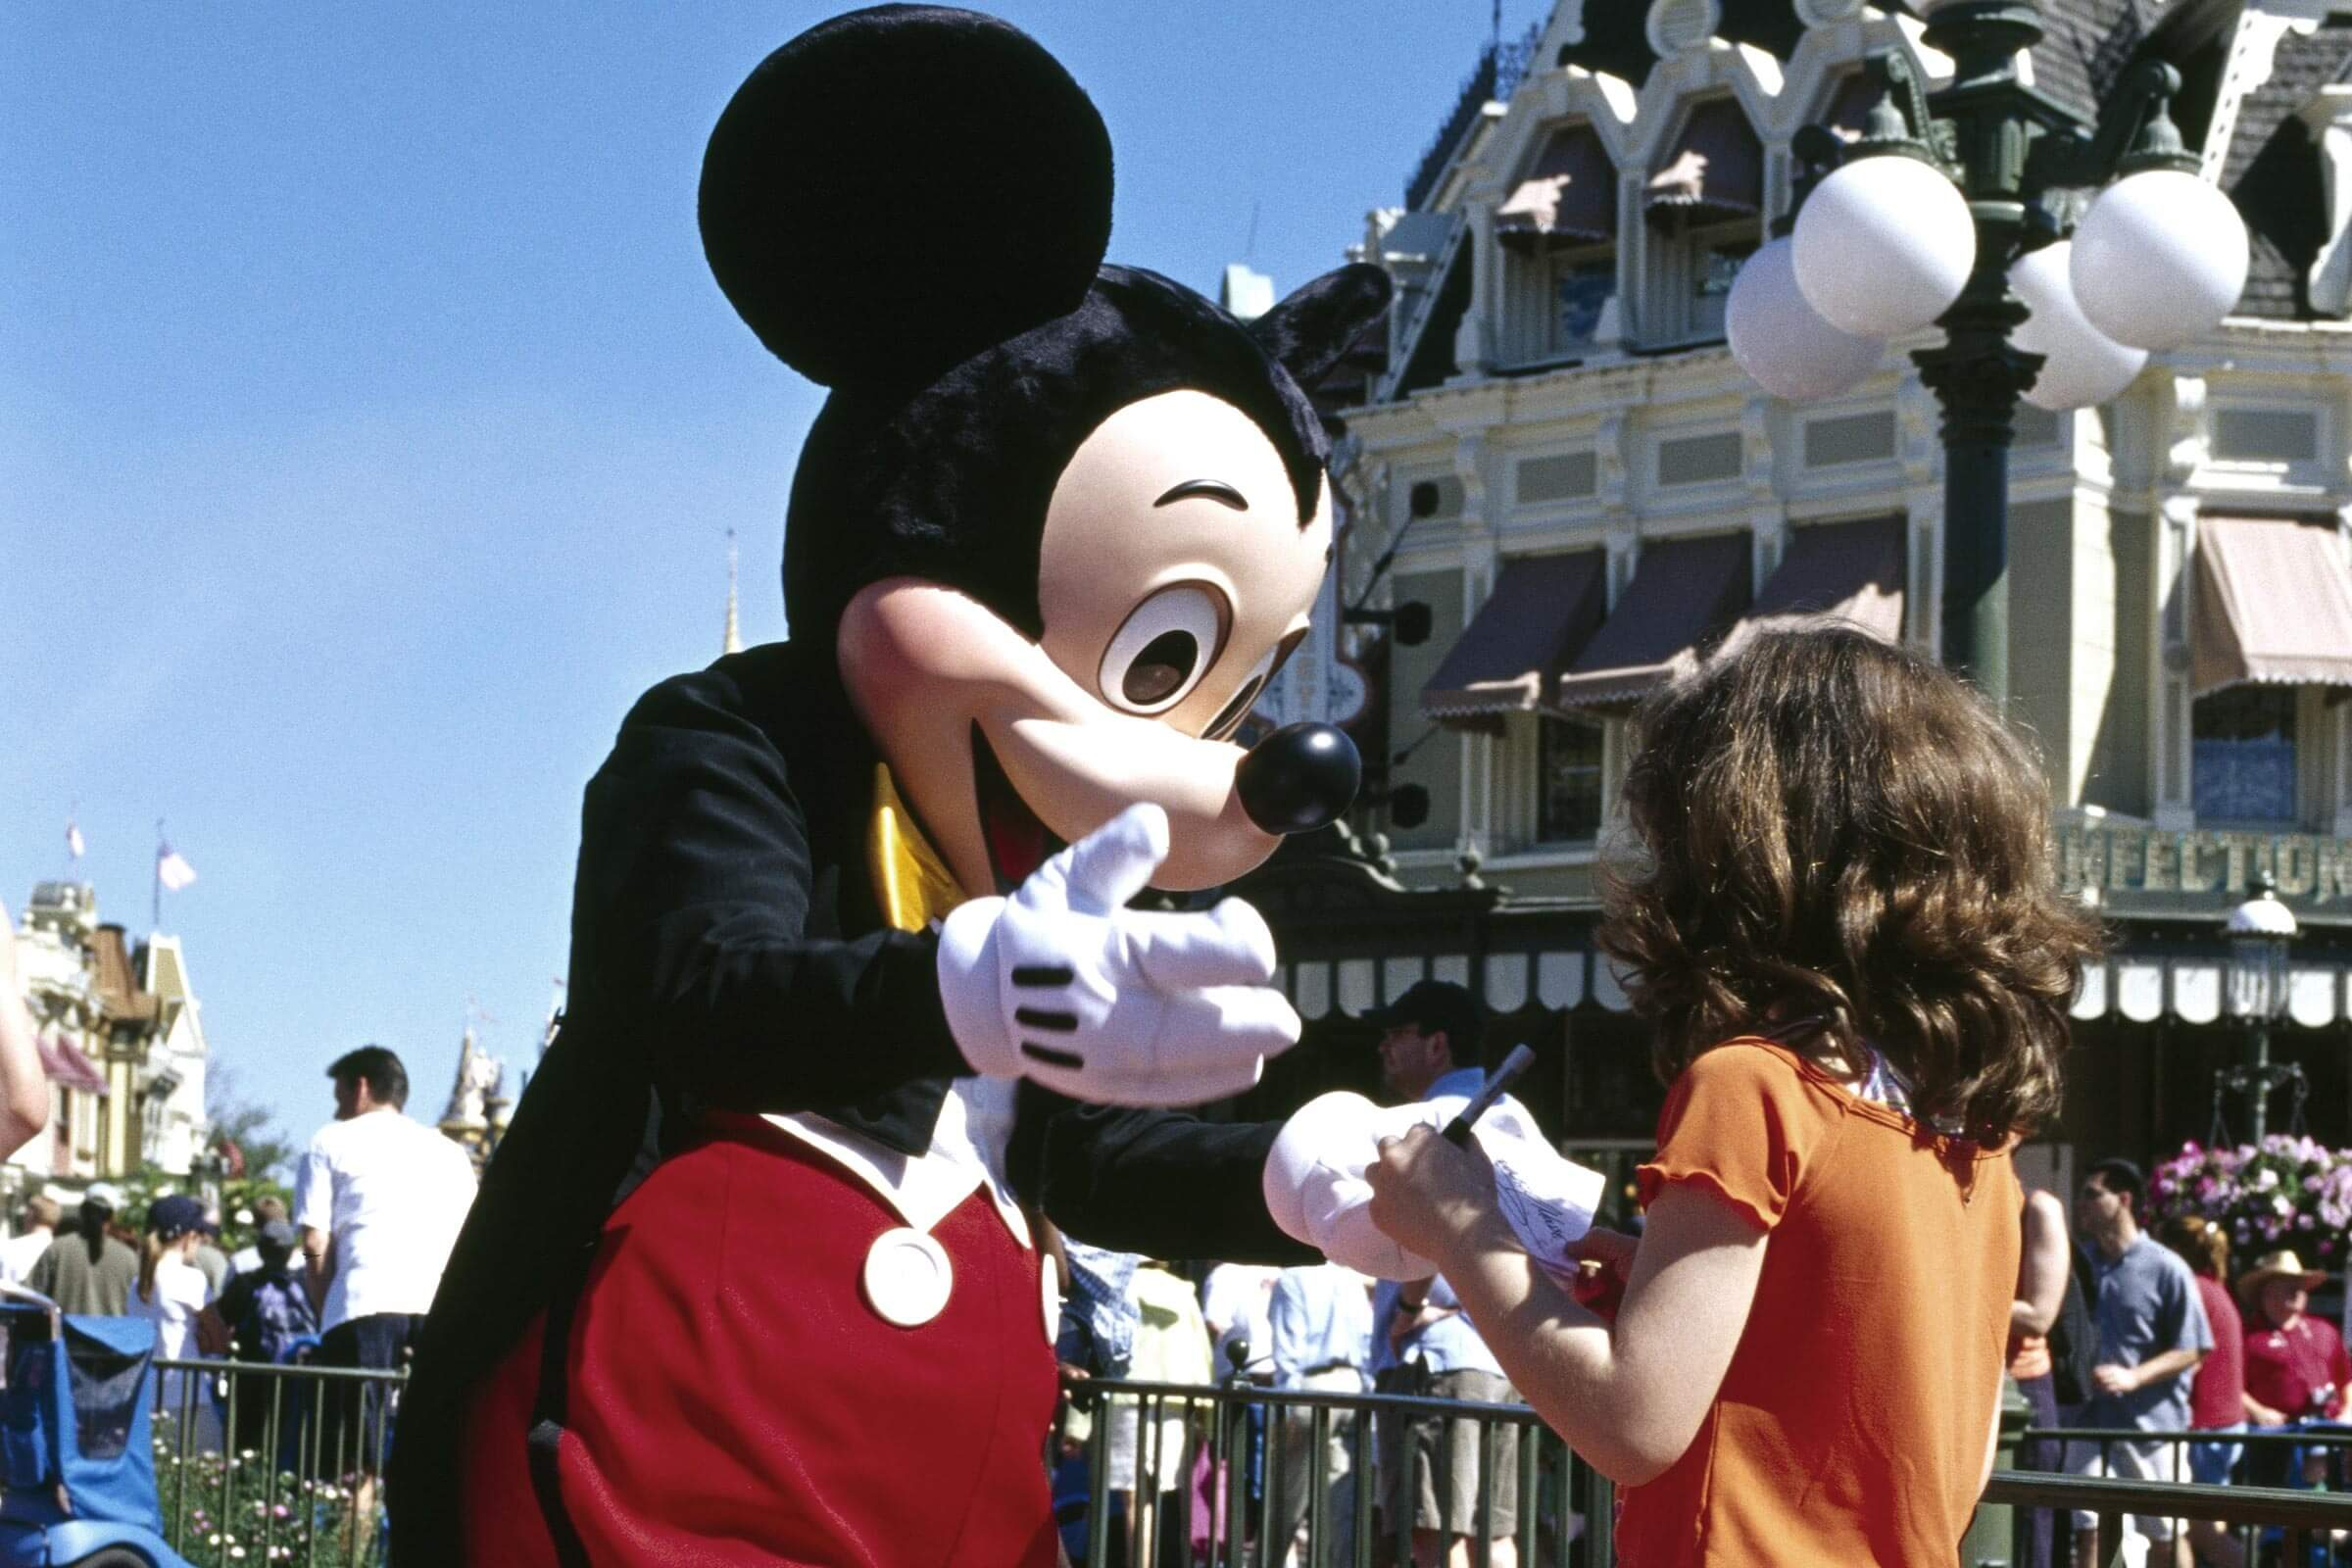 Mickey Mouse giving a girl his autograph, Disneyworld, Disney World, Orlando, Florida, USA